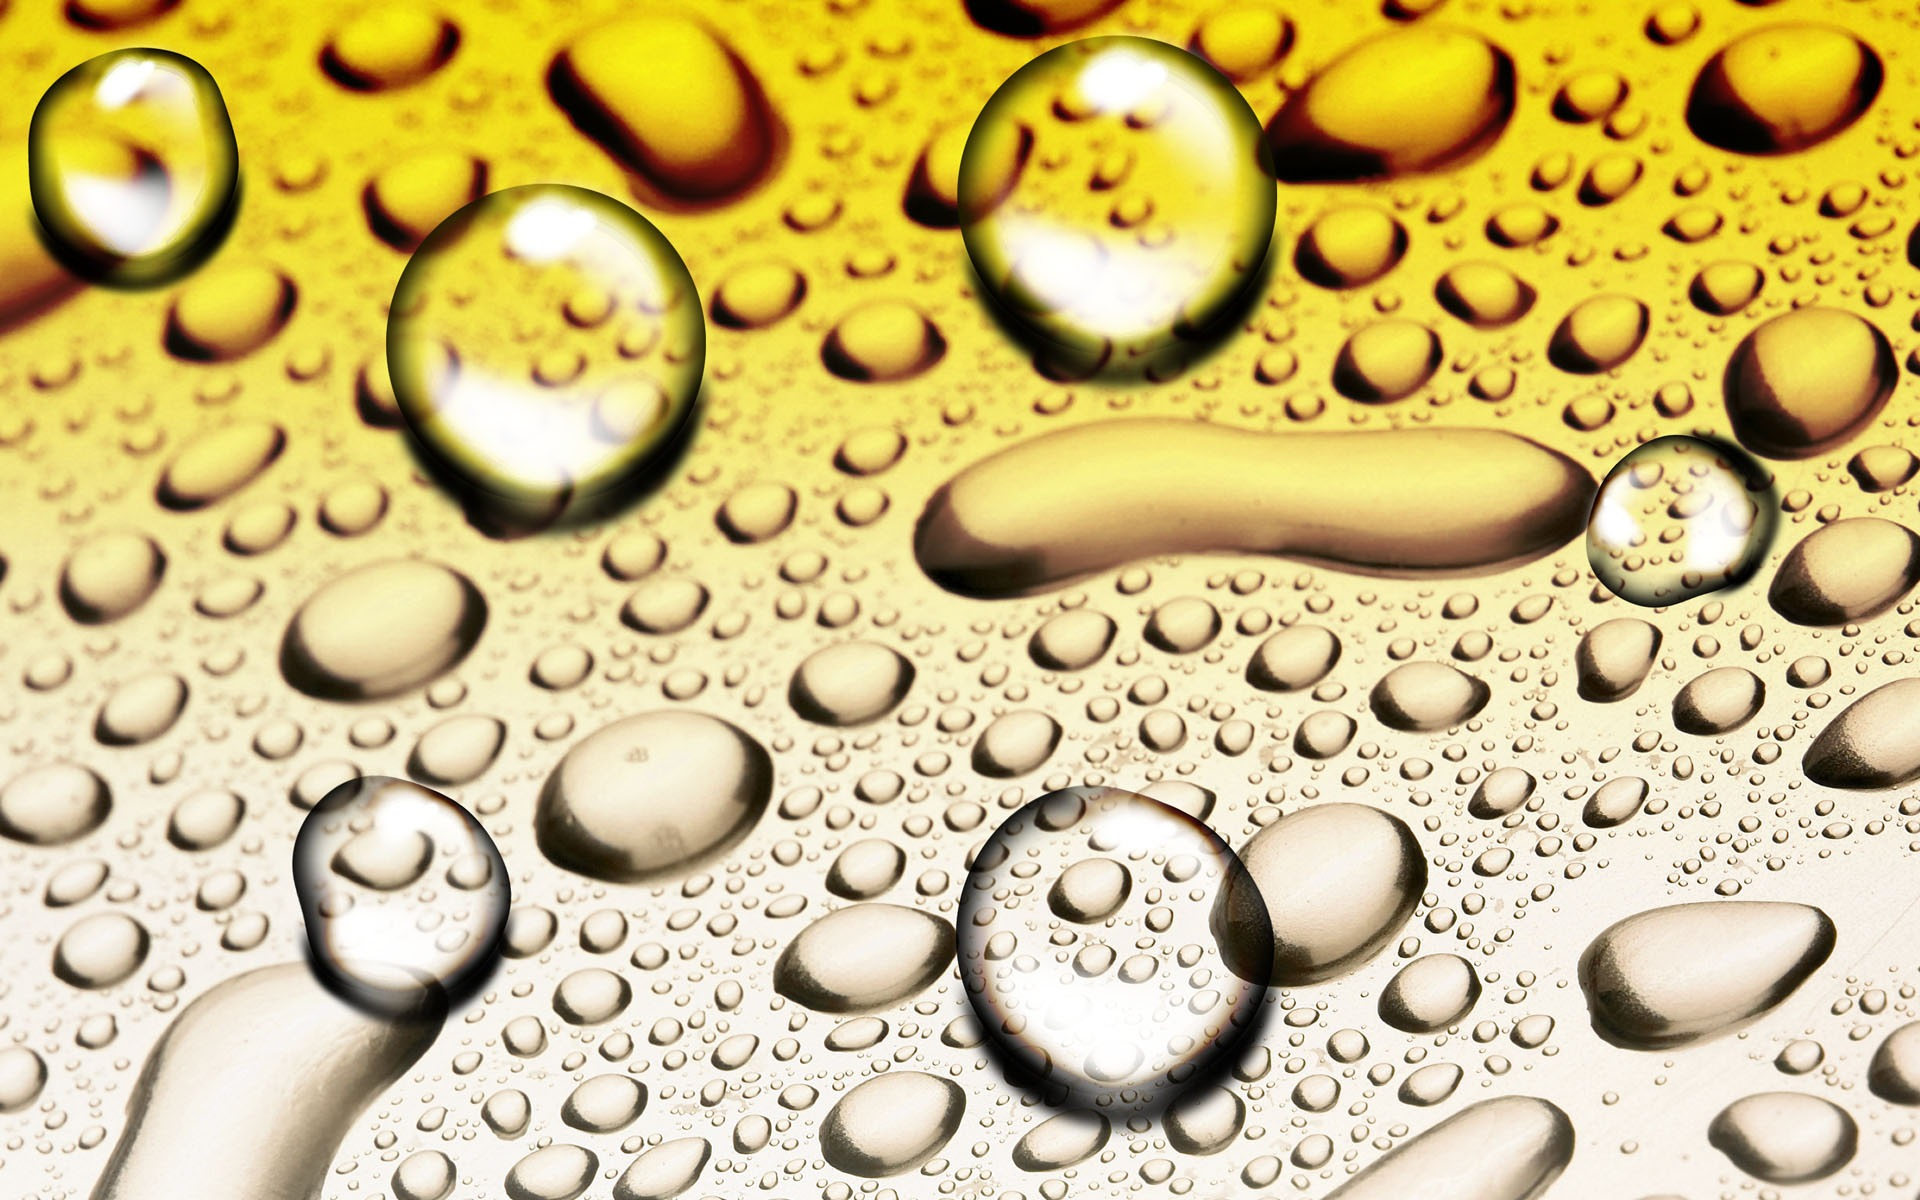 Colorful Water Drops Hd wallpapers HD free - 3150